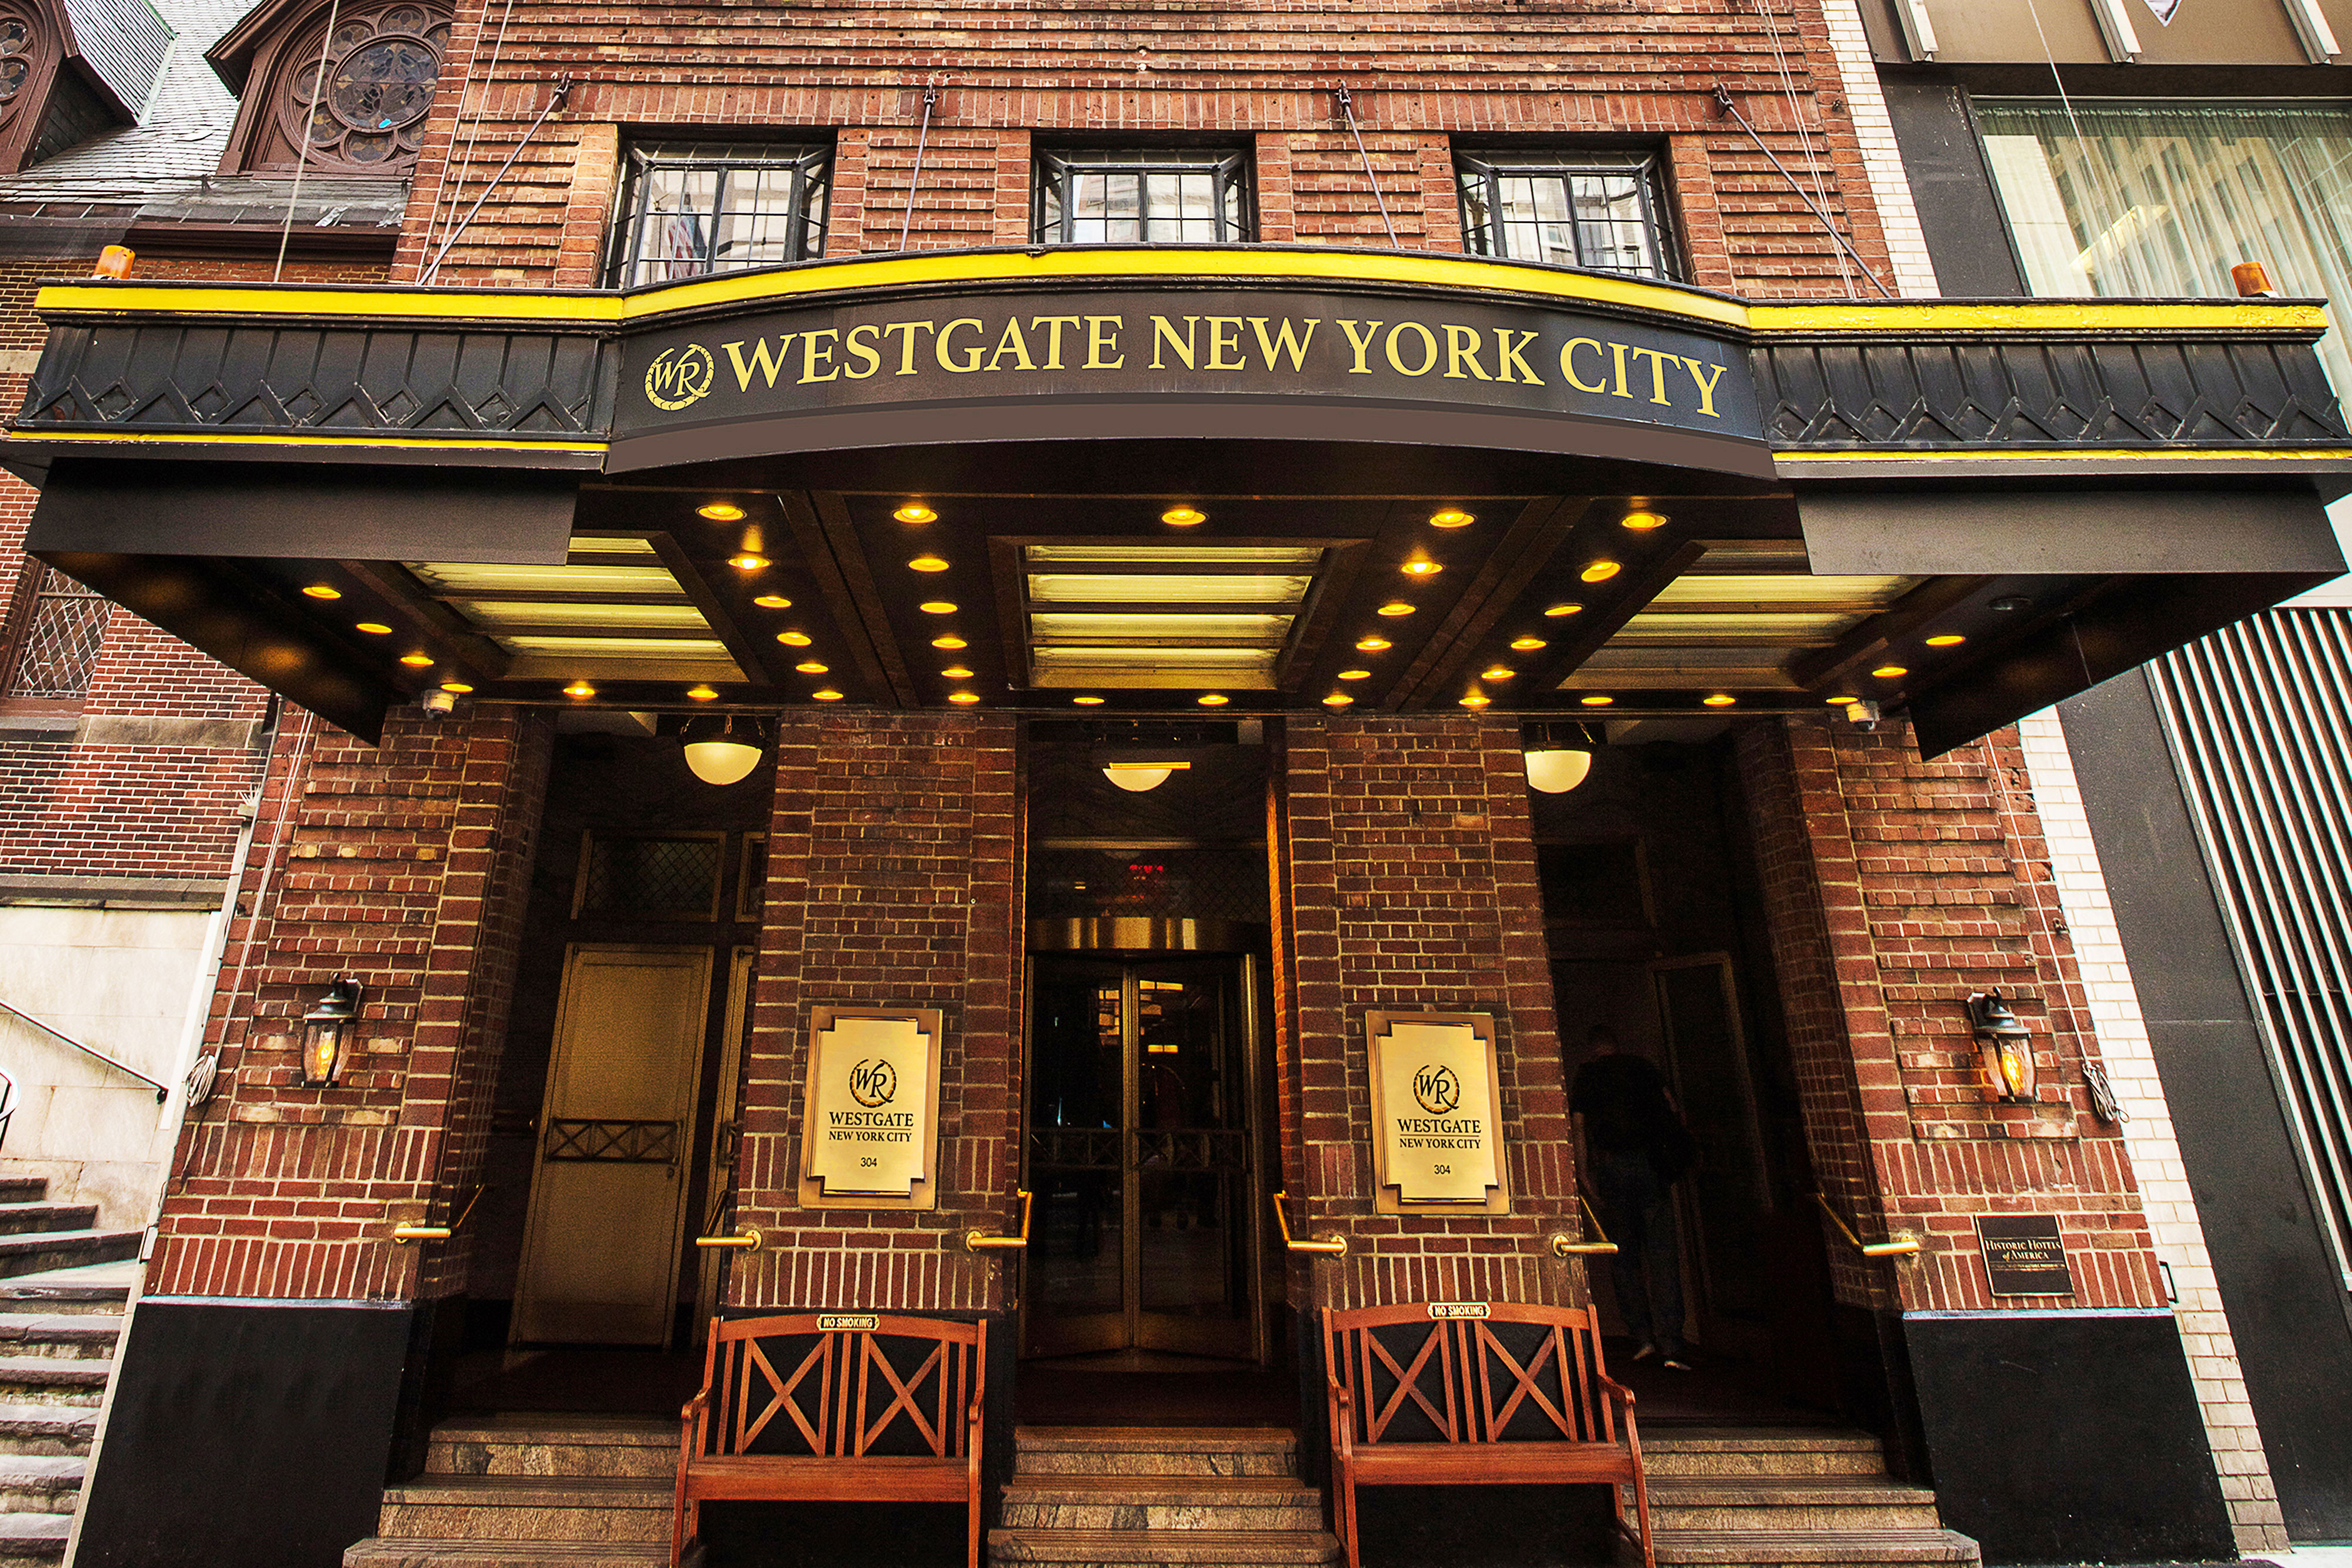 Discount Hotel Room Rates at a Midtown Manhattan Hotel | Westgate New York City